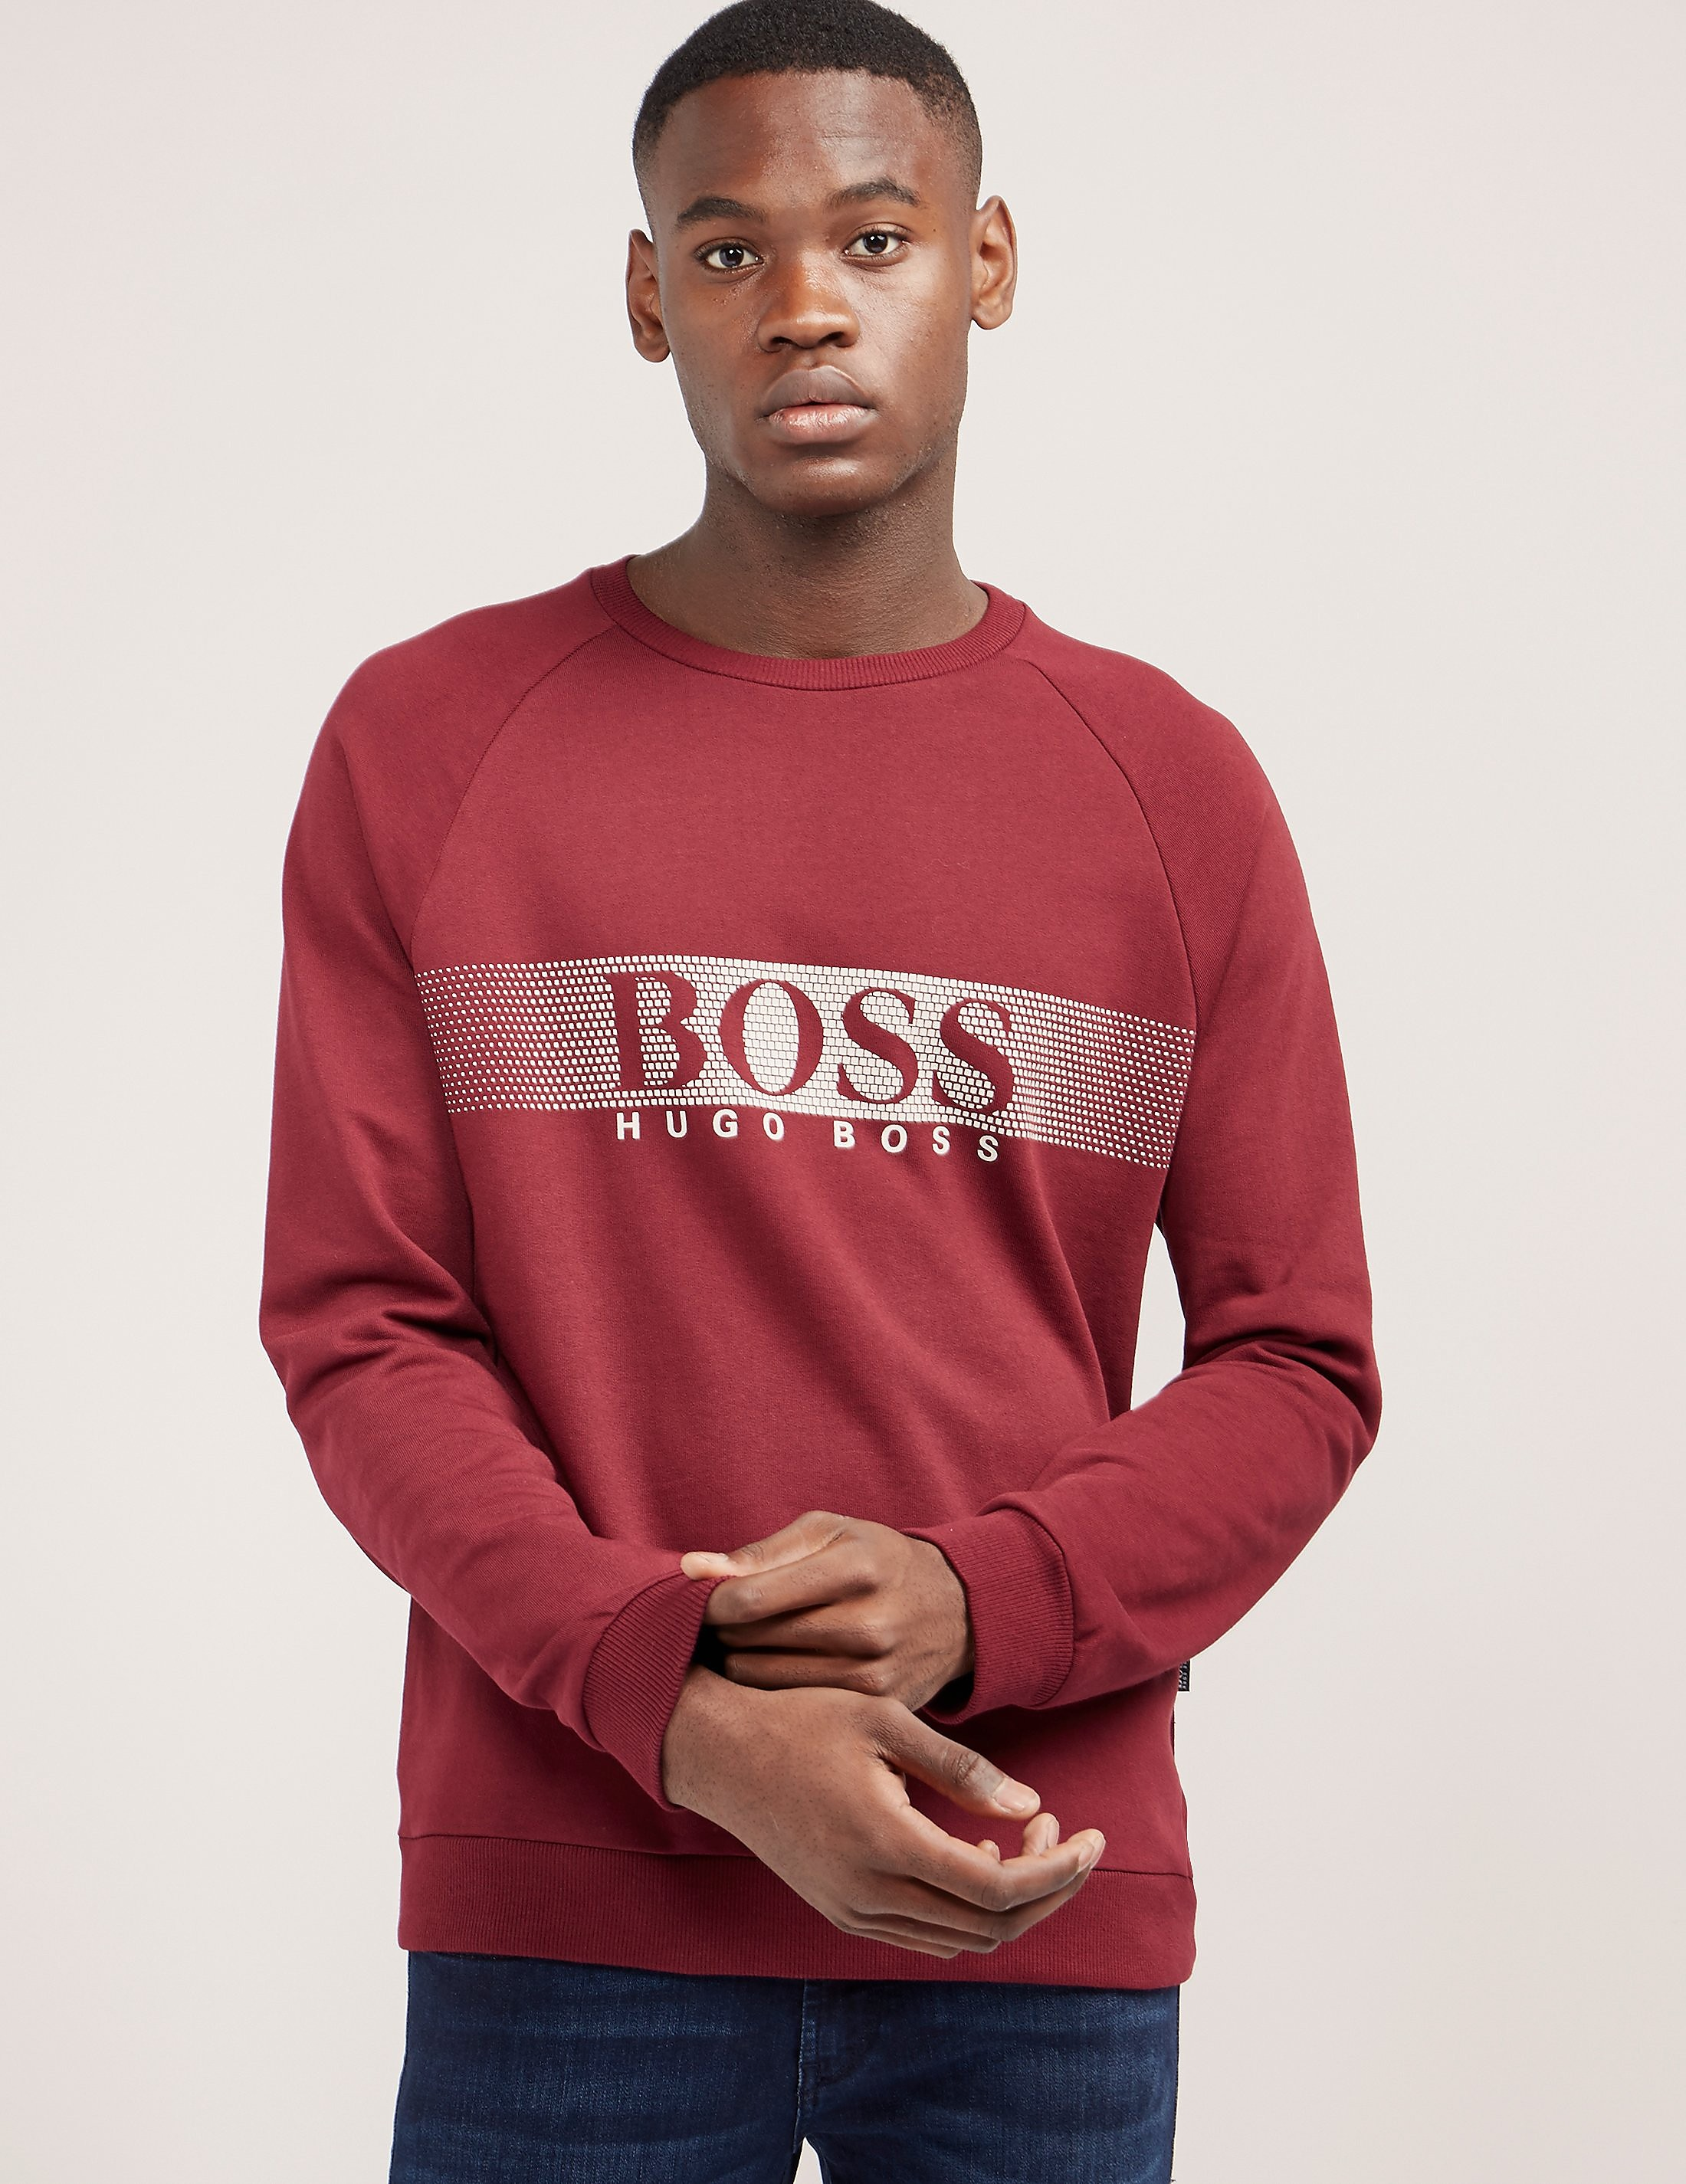 BOSS Swim Crew Neck Sweatshirt